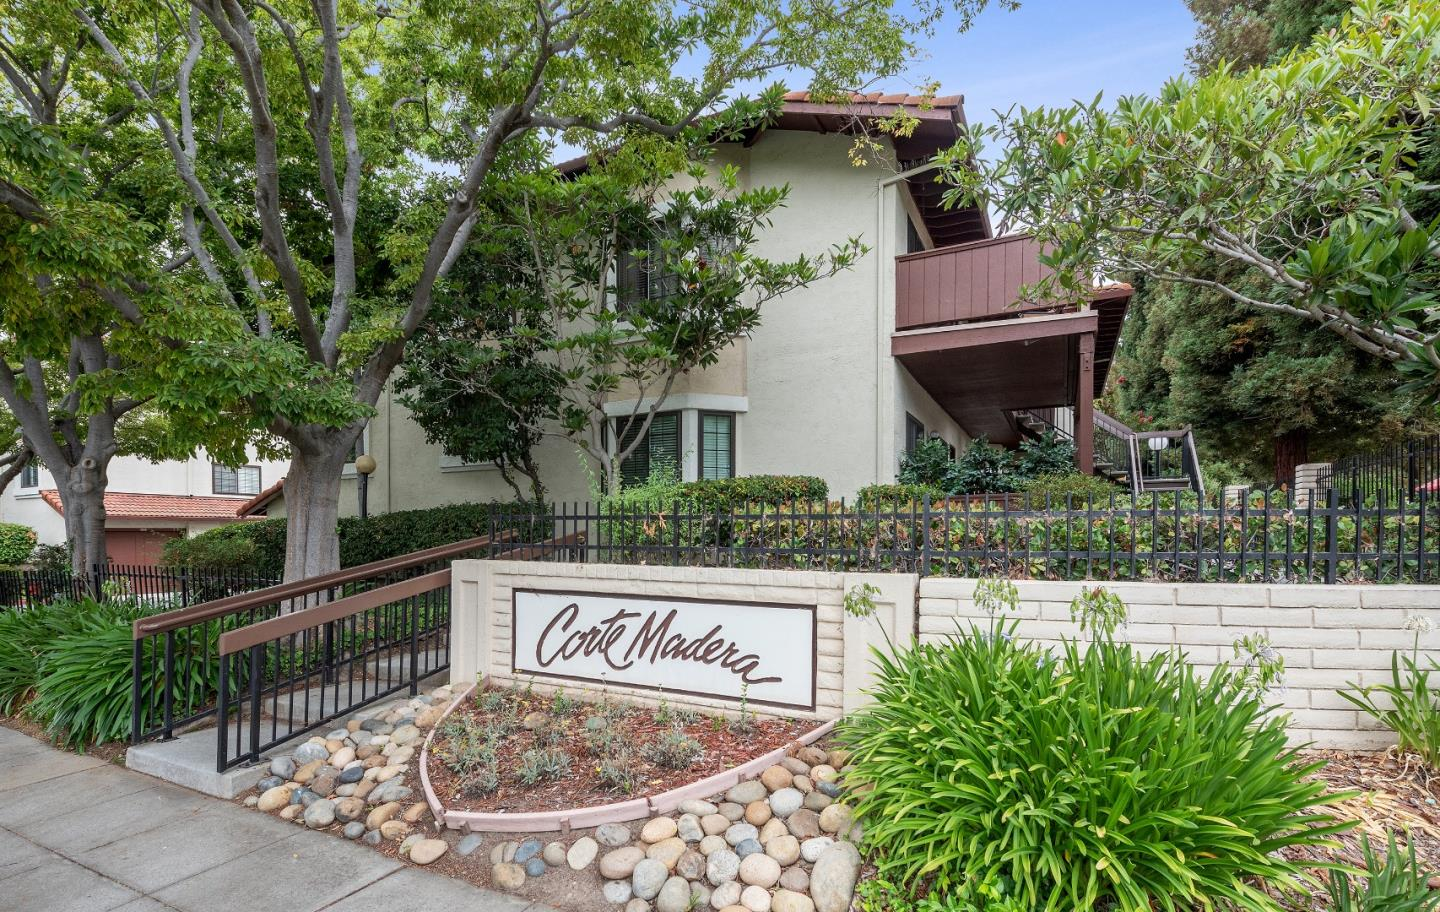 Beautifully updated 2 bed and 1 bath end unit condo offers a rare opportunity to live in the best location at Corte Madera Commons in Sunnyvale / Large living room with separate dining area shares a wall of windows / Generous size bedrooms and walk-in closet / New paint and interior doors / Granite counters and stainless steel appliances / Front patio where you can enjoy your morning coffee with views of Encinal Park / Central heating and air conditioning / Inside washer and dryer / Tandem 2 car garage with additional storage and automatic door opener / Community swimming pool and playgrounds / Sunnyvale Municipal Golf Course in the neighborhood / Excellent commute location is just minutes from downtown Sunnyvale and the Caltrain station / Close to Apple, Google, LinkedIn, Microsoft and many other tech companies / Easy access to Highways 237 and 101 and 85 will get you quickly to anywhere Silicon Valley / Vargas Elementary School, Sunnyvale Middle and Homestead High / Welcome Home !